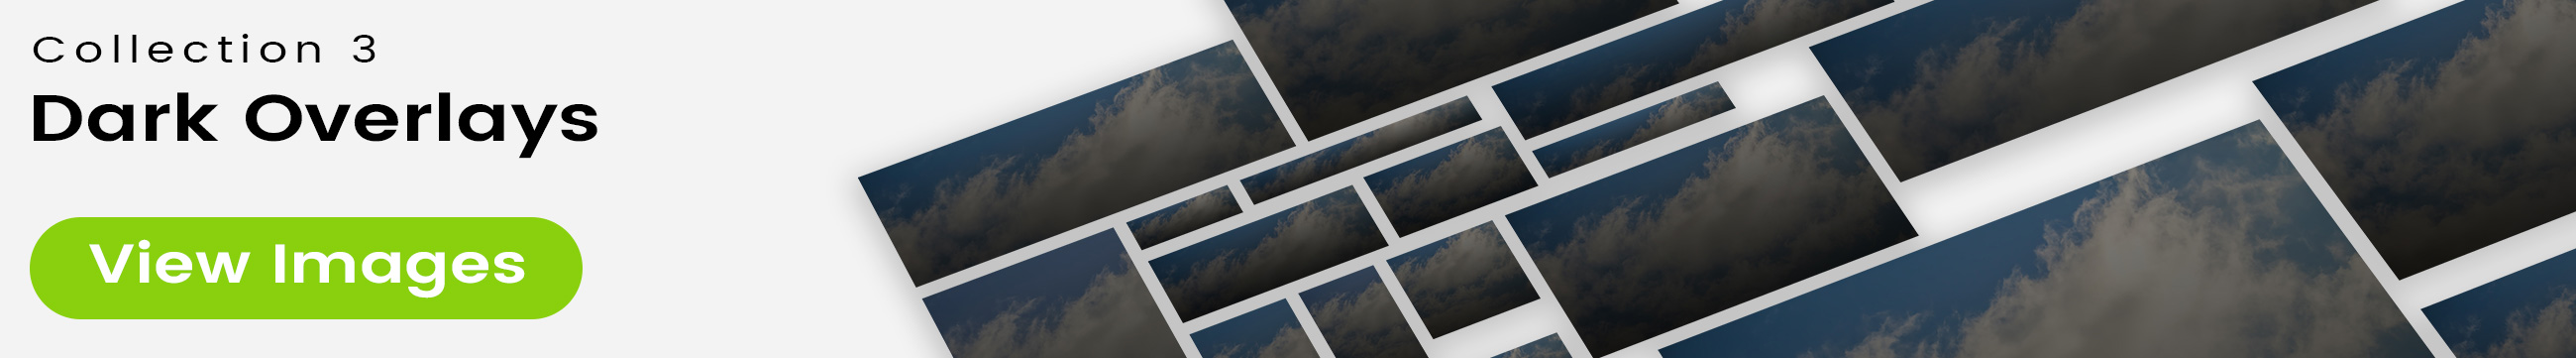 See 25 bonus images included with clouds stock image 9464. Collection 3 of 4 features a dark overlay design.